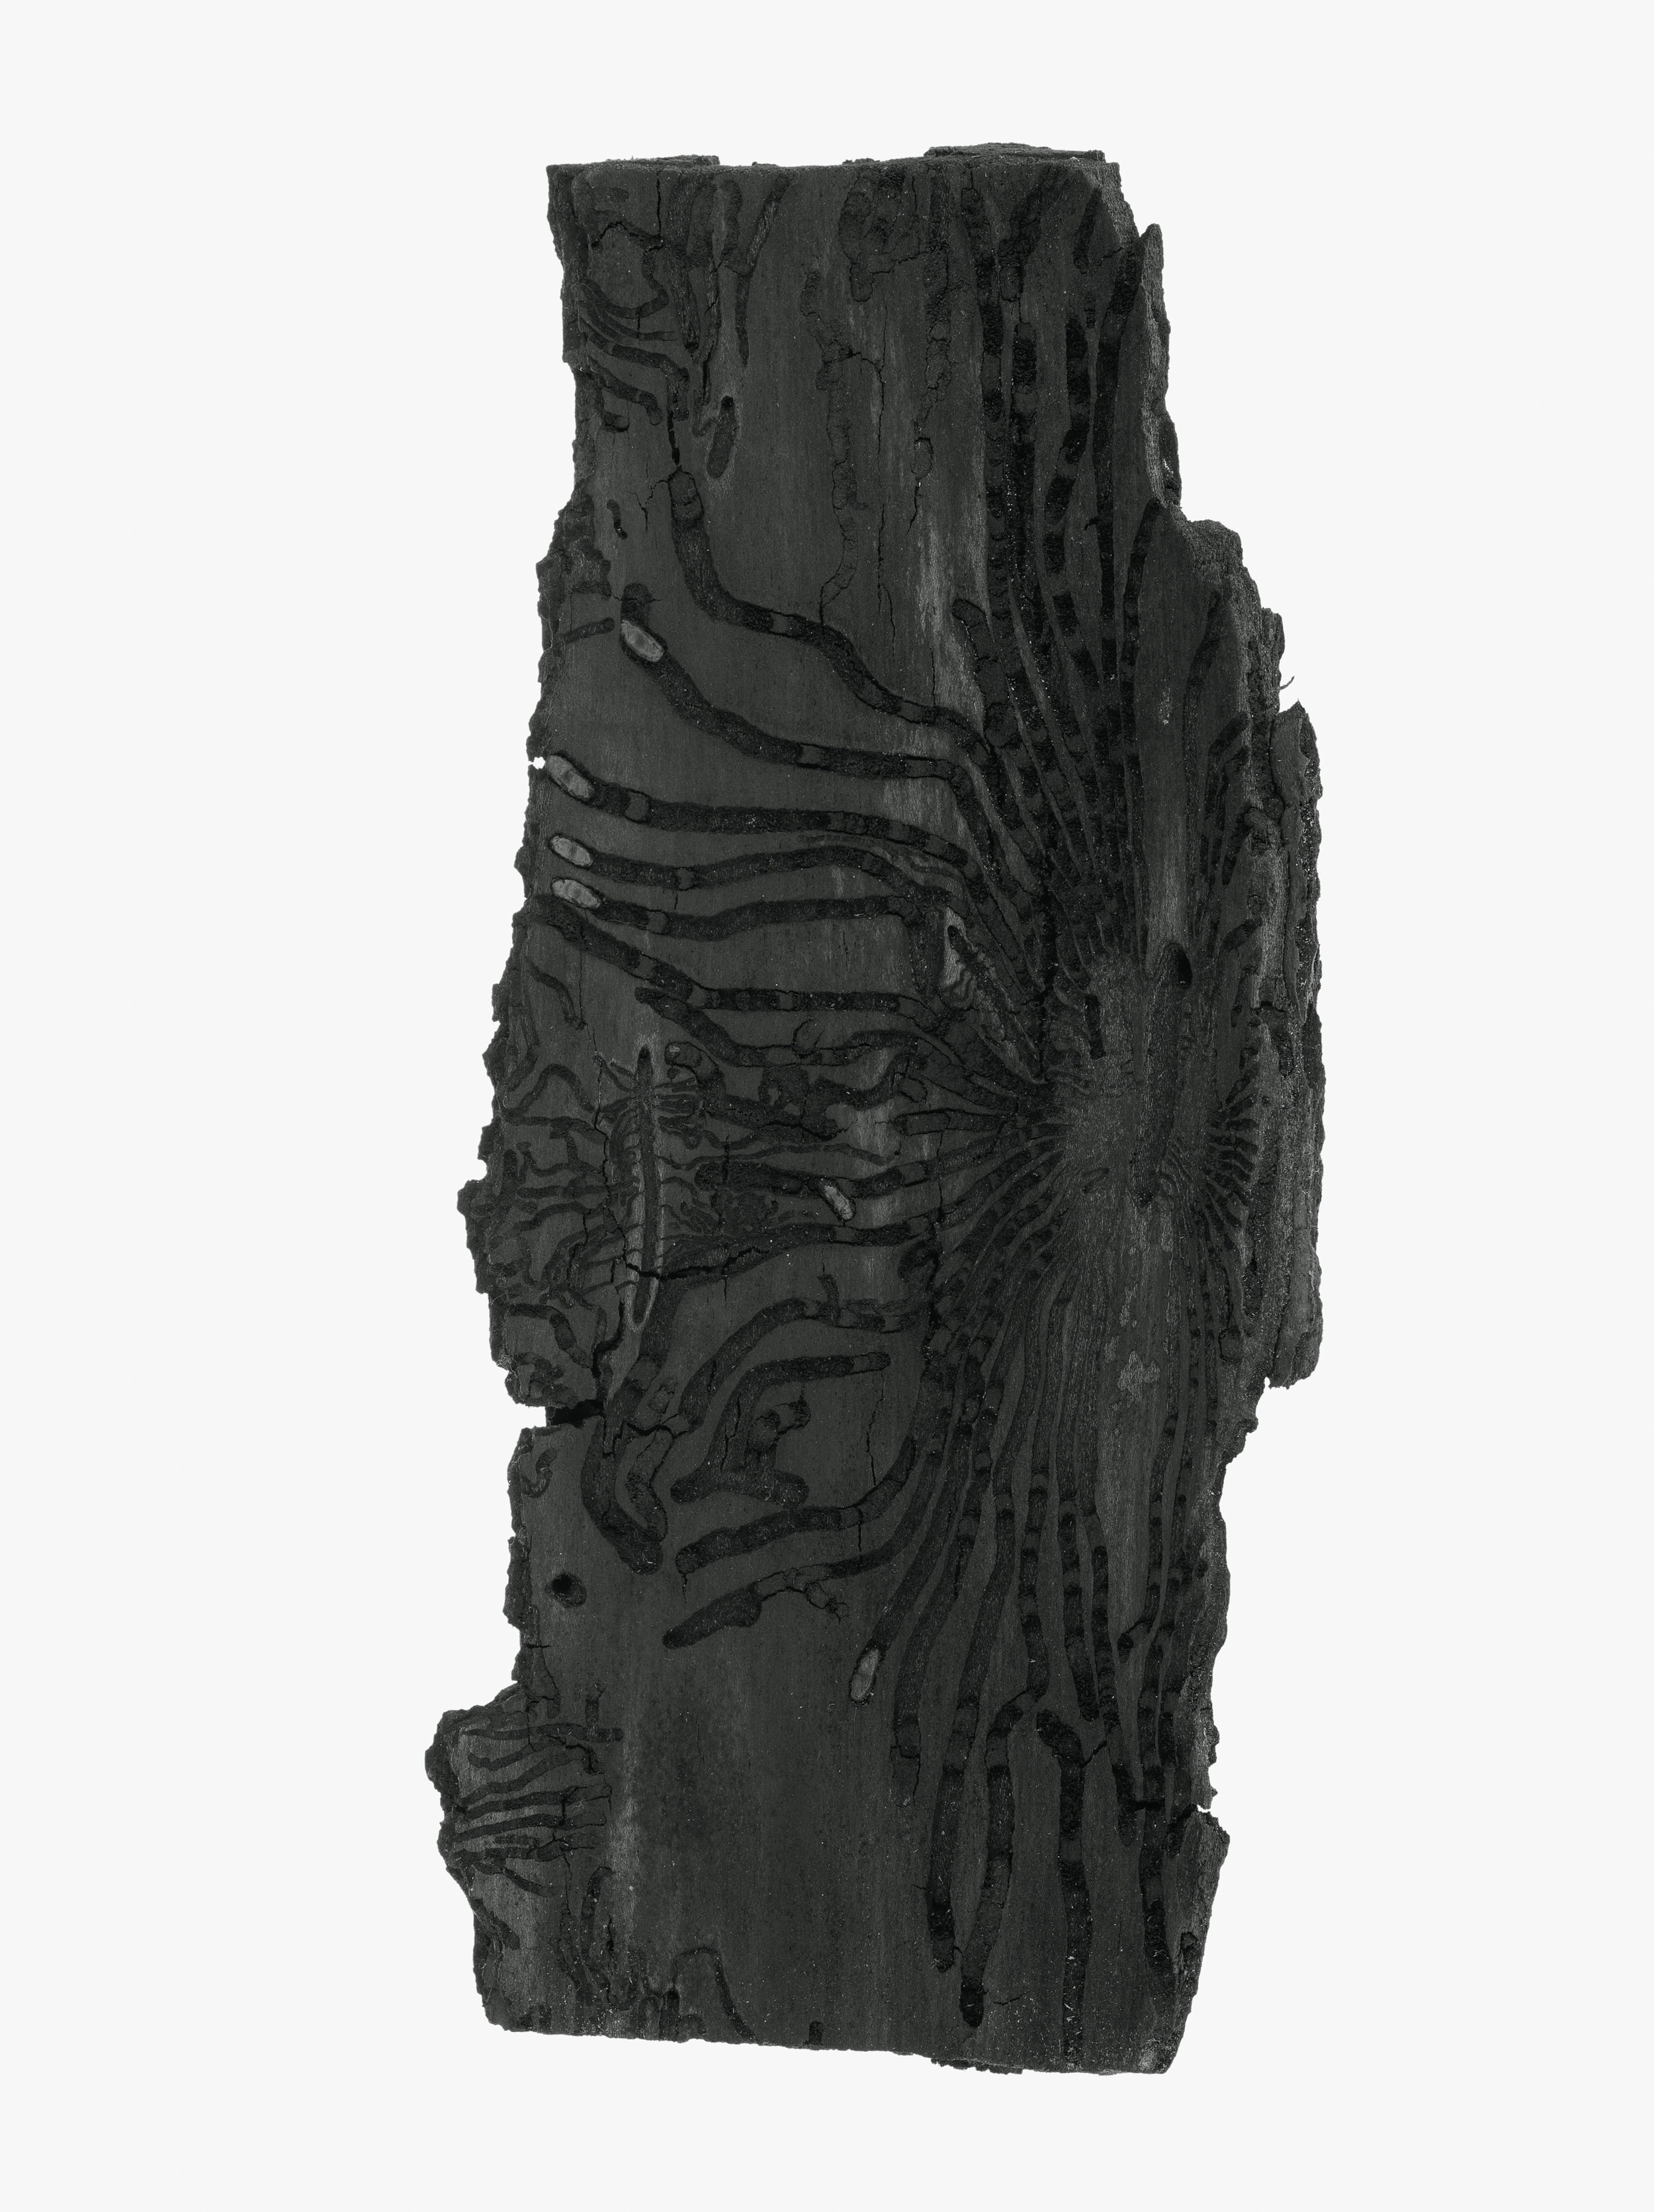 The reverse side of tree bark.jpg